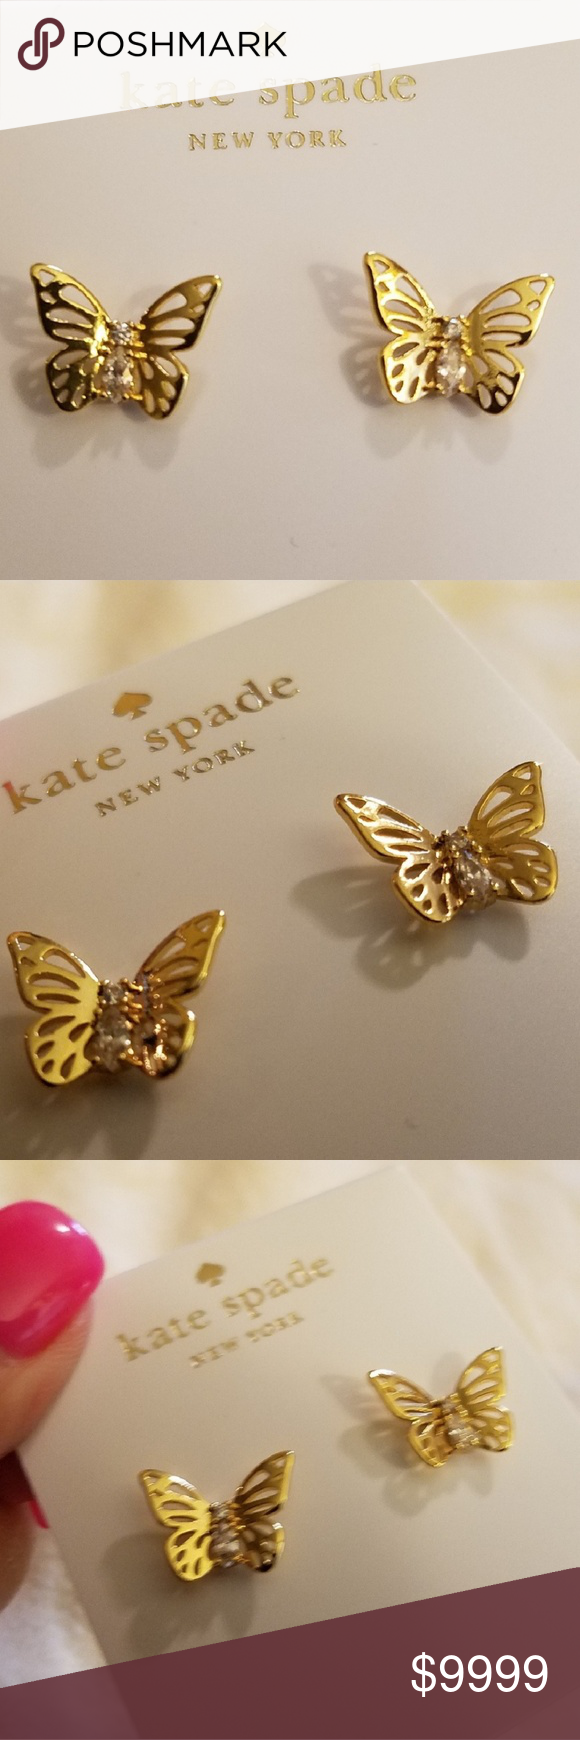 527446817 Kate♤️Spade 🚫NO Rediculous Lowball Offers. 🦋Social Butterfly🦋 Earrings3  You can